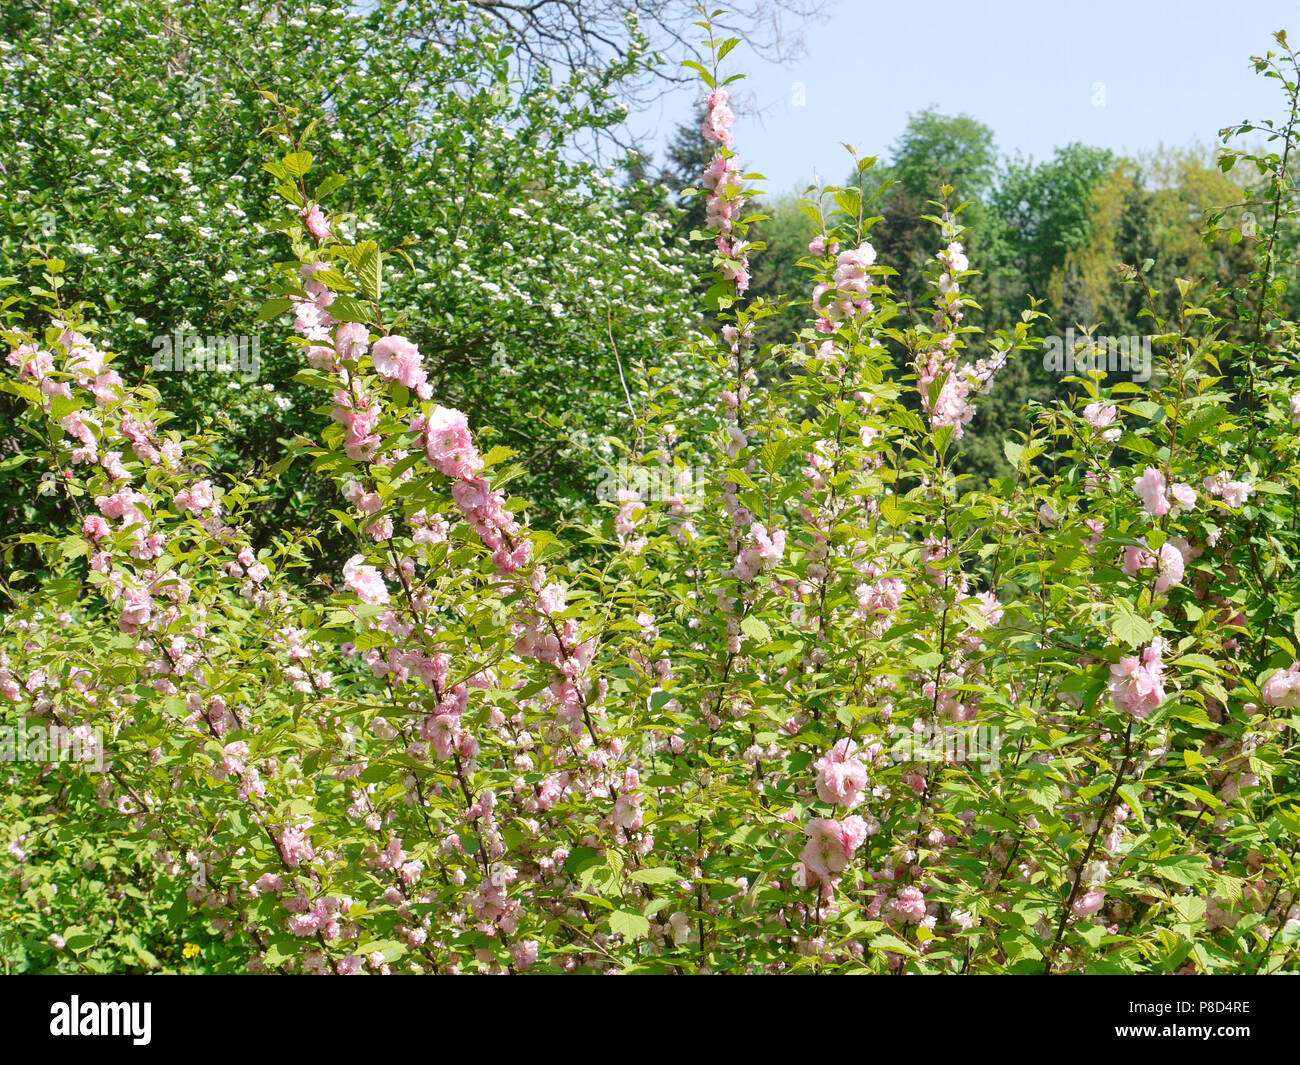 Long Thin Branches Of A Bush With Bright Pink Flowers Growing On It